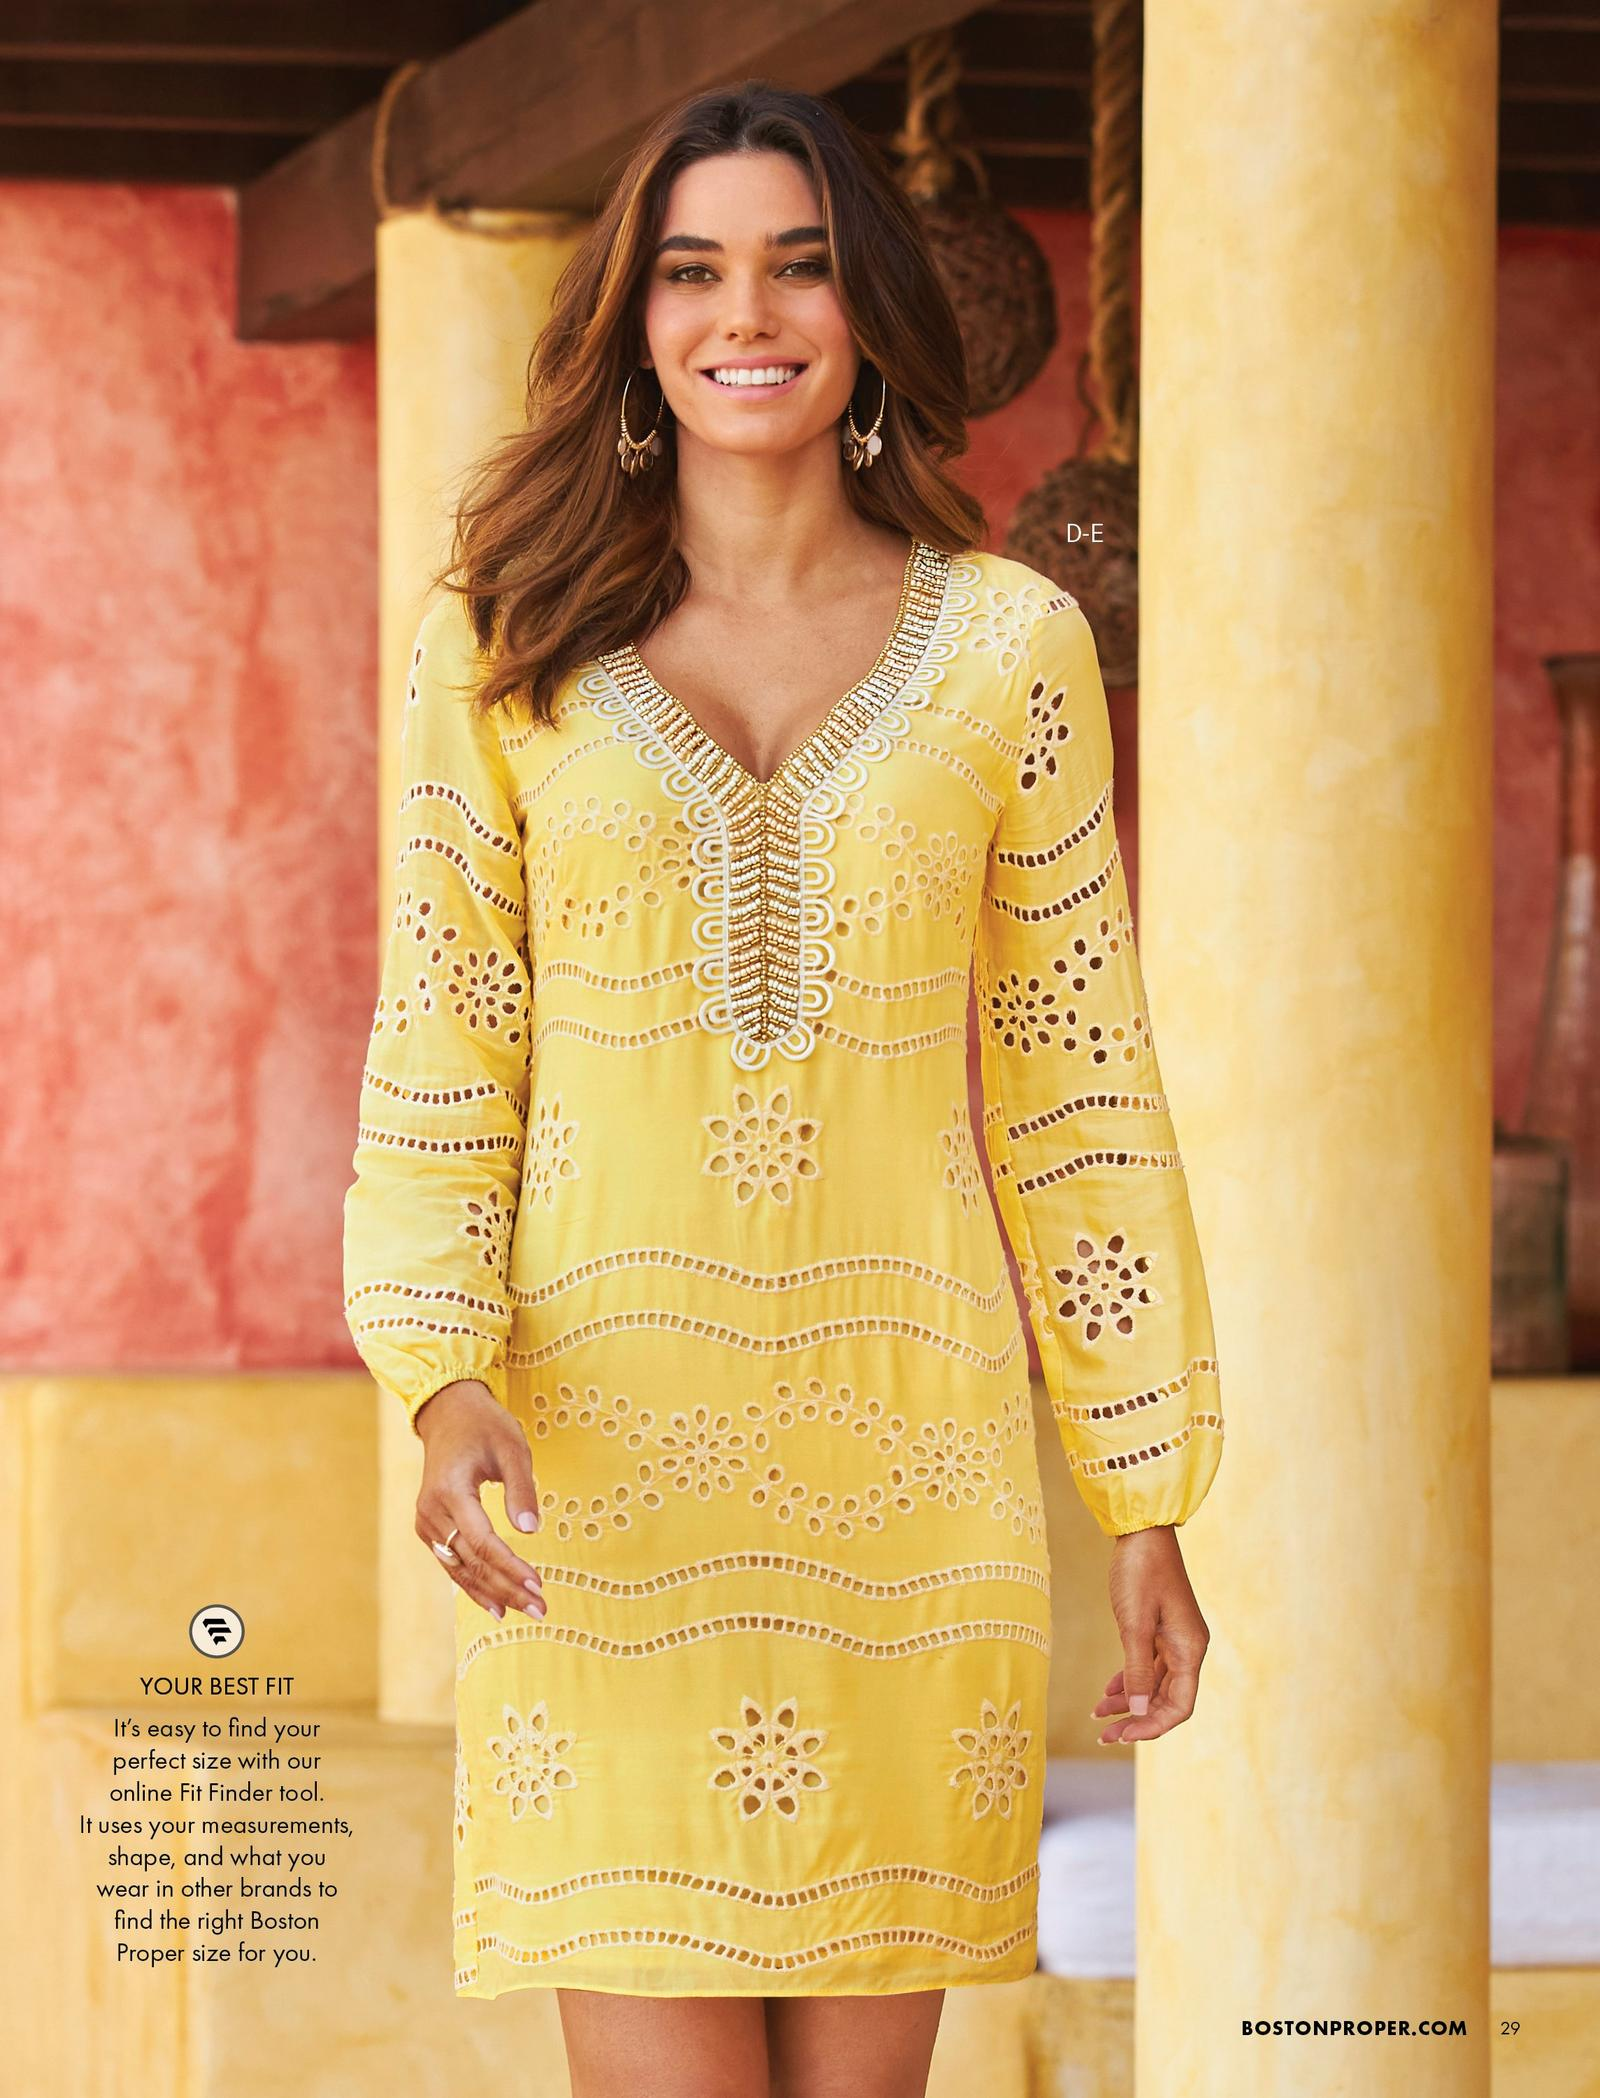 model wearing a yellow eyelet embellished shift dress and gold embellished hoop earrings.